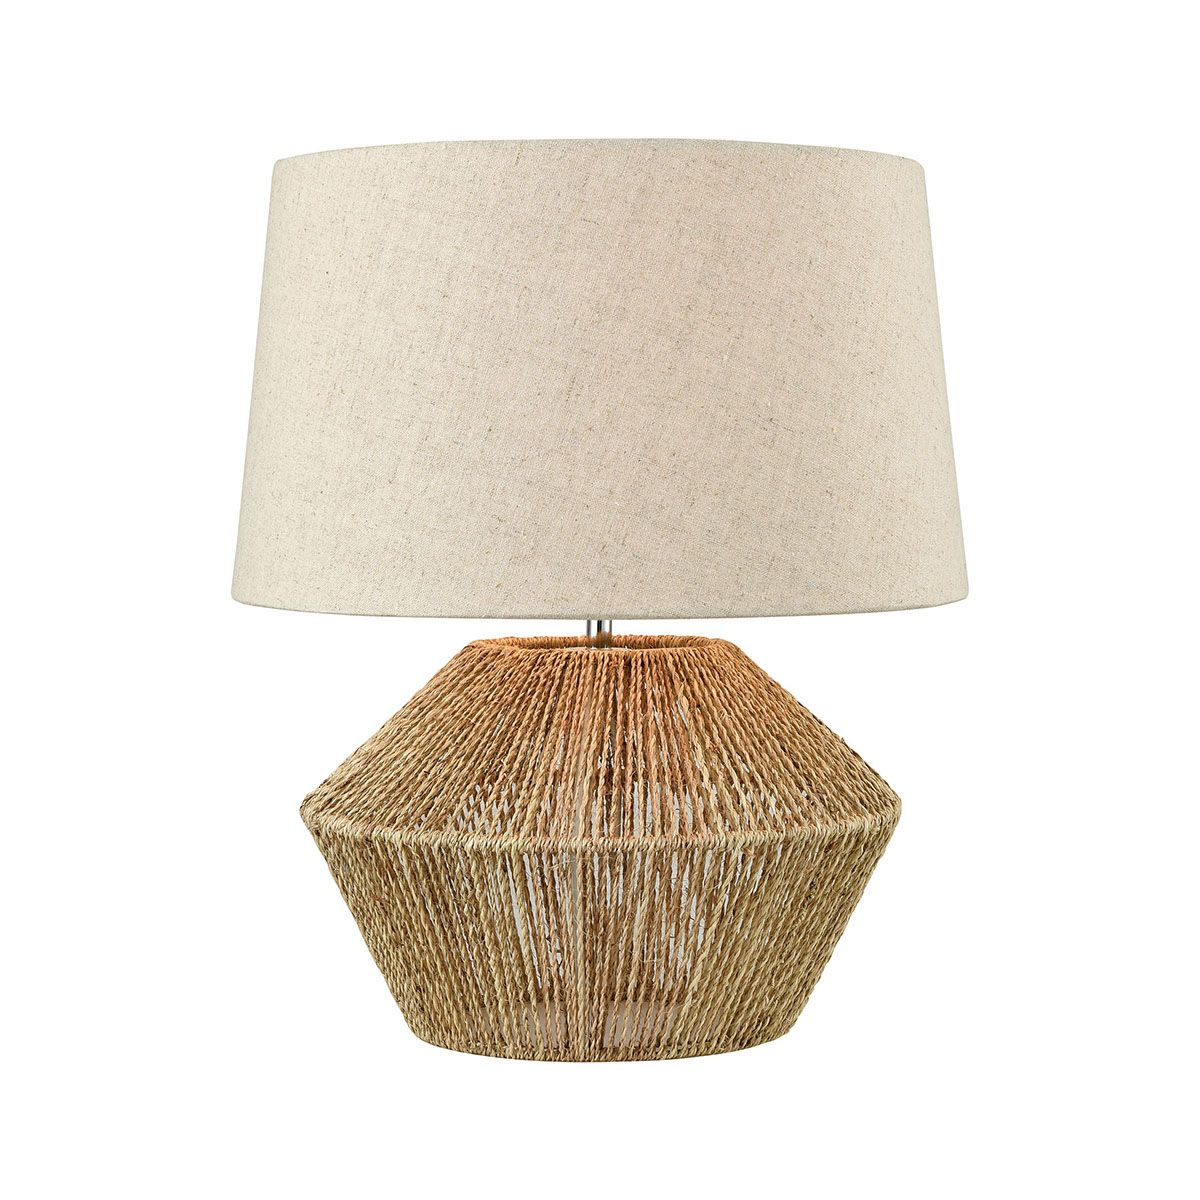 Vavda Table Lamp Walmart Com In 2020 Unique Table Lamps Table